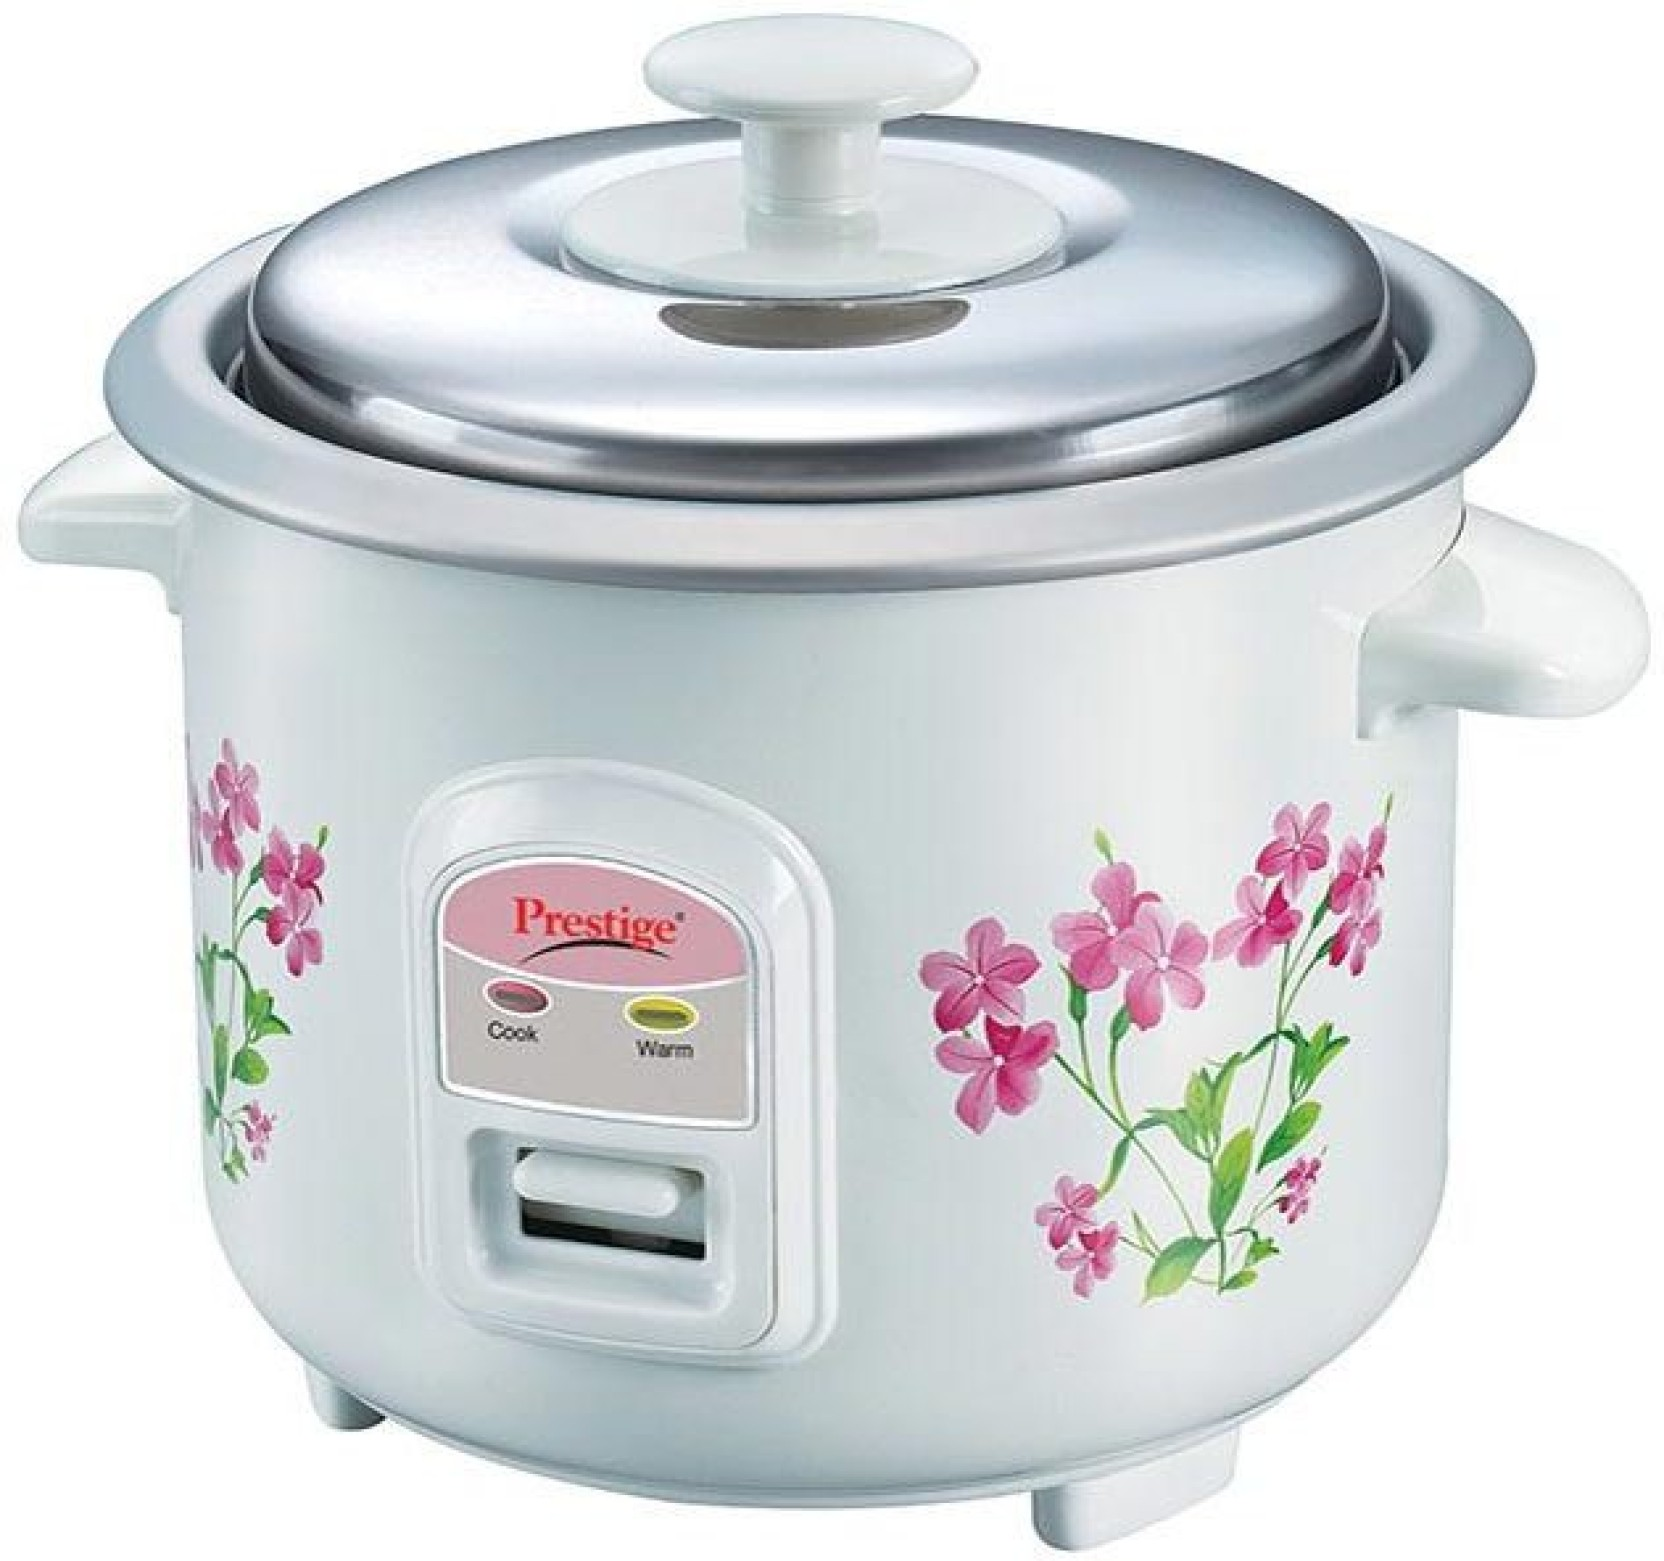 Prestige PRWO 0.6-2 Electric Rice Cooker with Steaming Feature Price ...